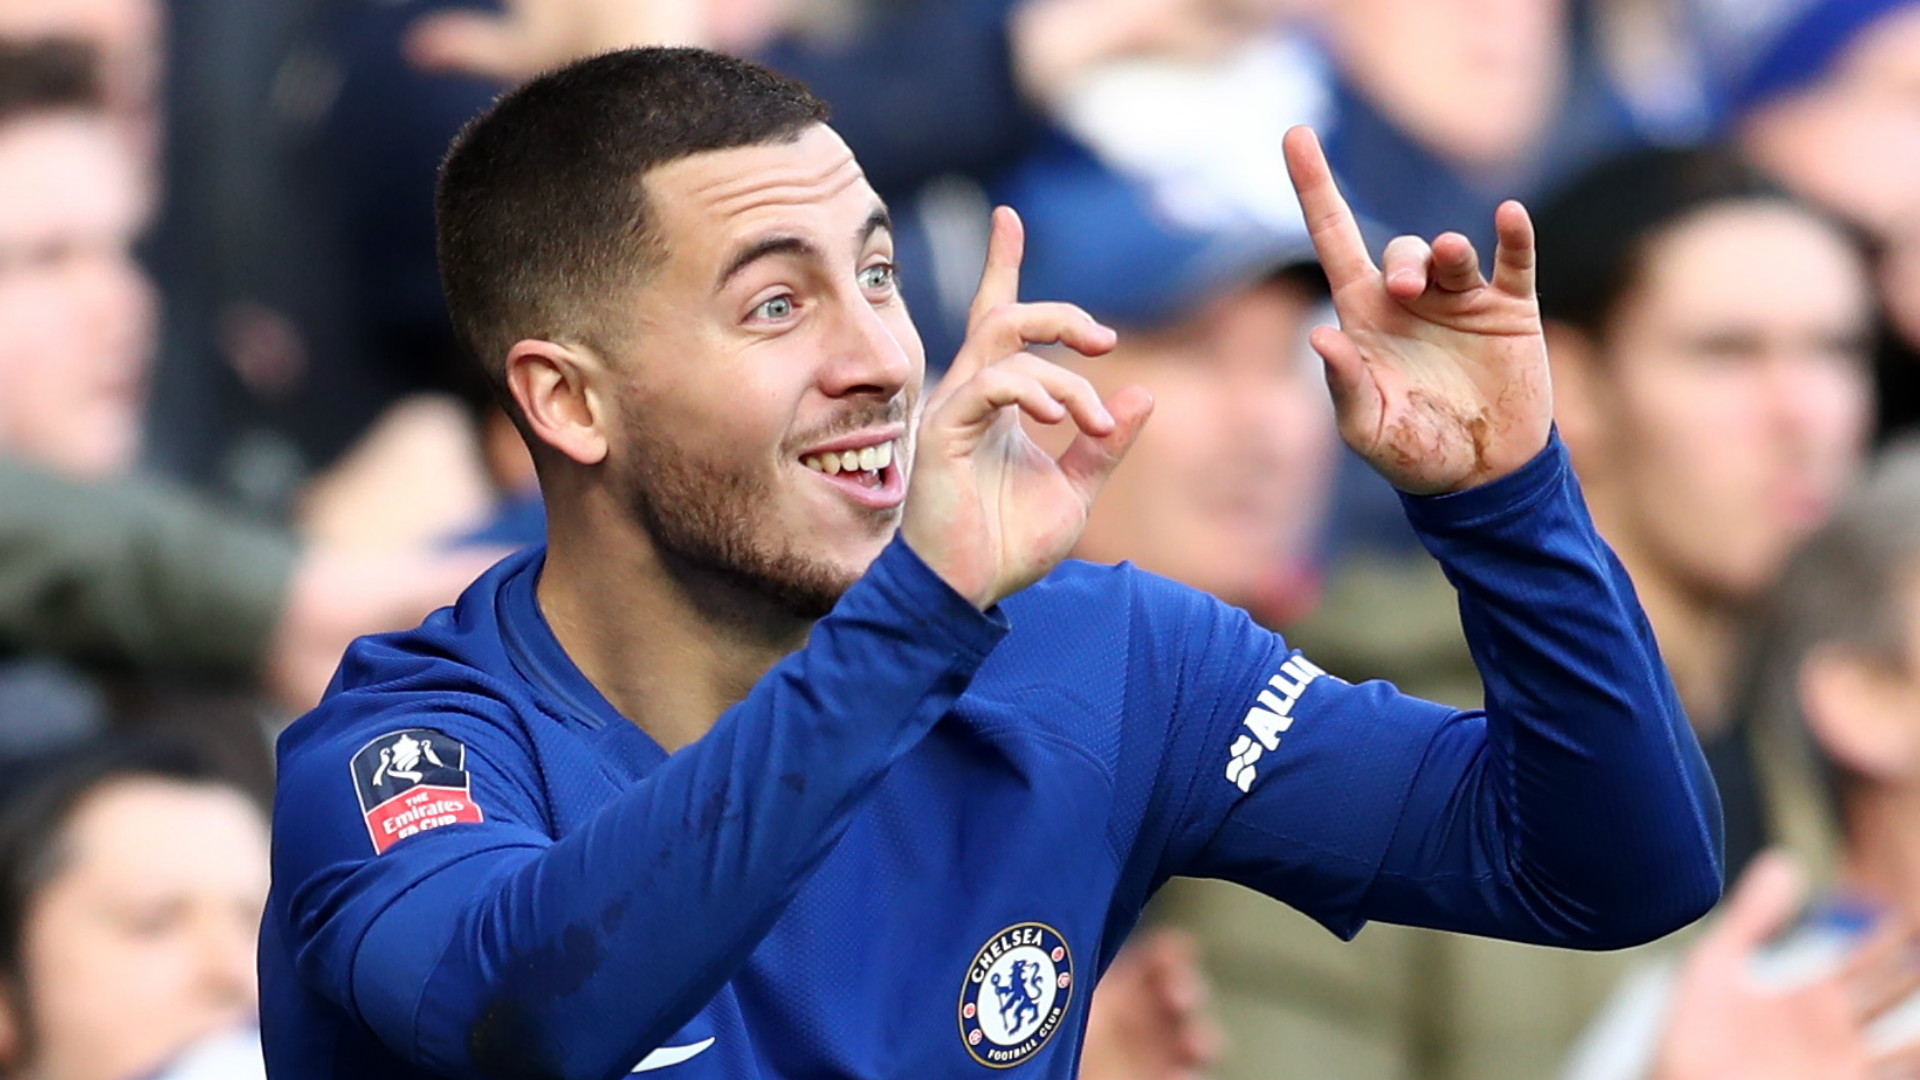 eden hazard chelsea n2g3wtbhxwto1eot6j22hdgqf - ROUND-UP of 30/1/2018 TRANSFER NEWS, DONE DEALS AND RUMOURS